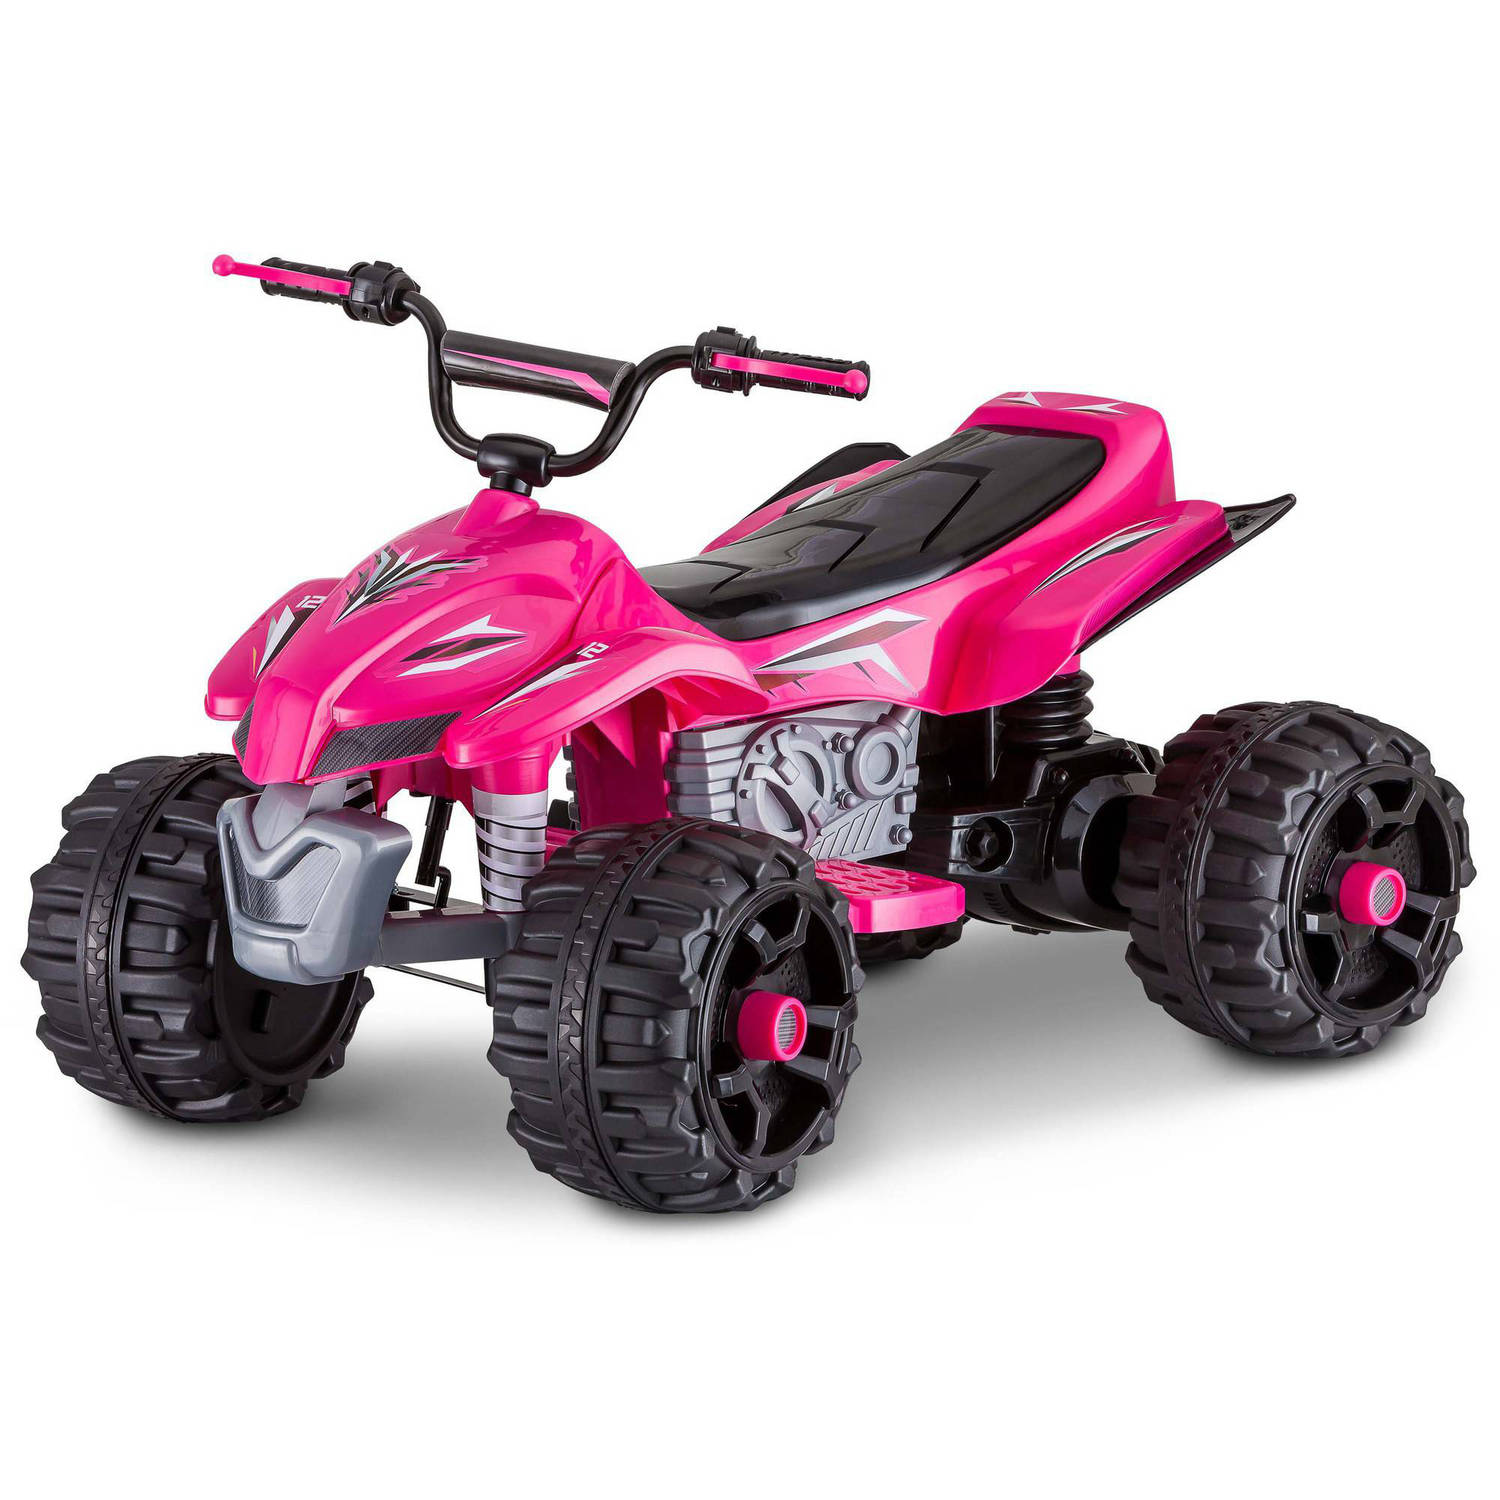 Sport ATV 12V Battery Powered Ride-On, Pink